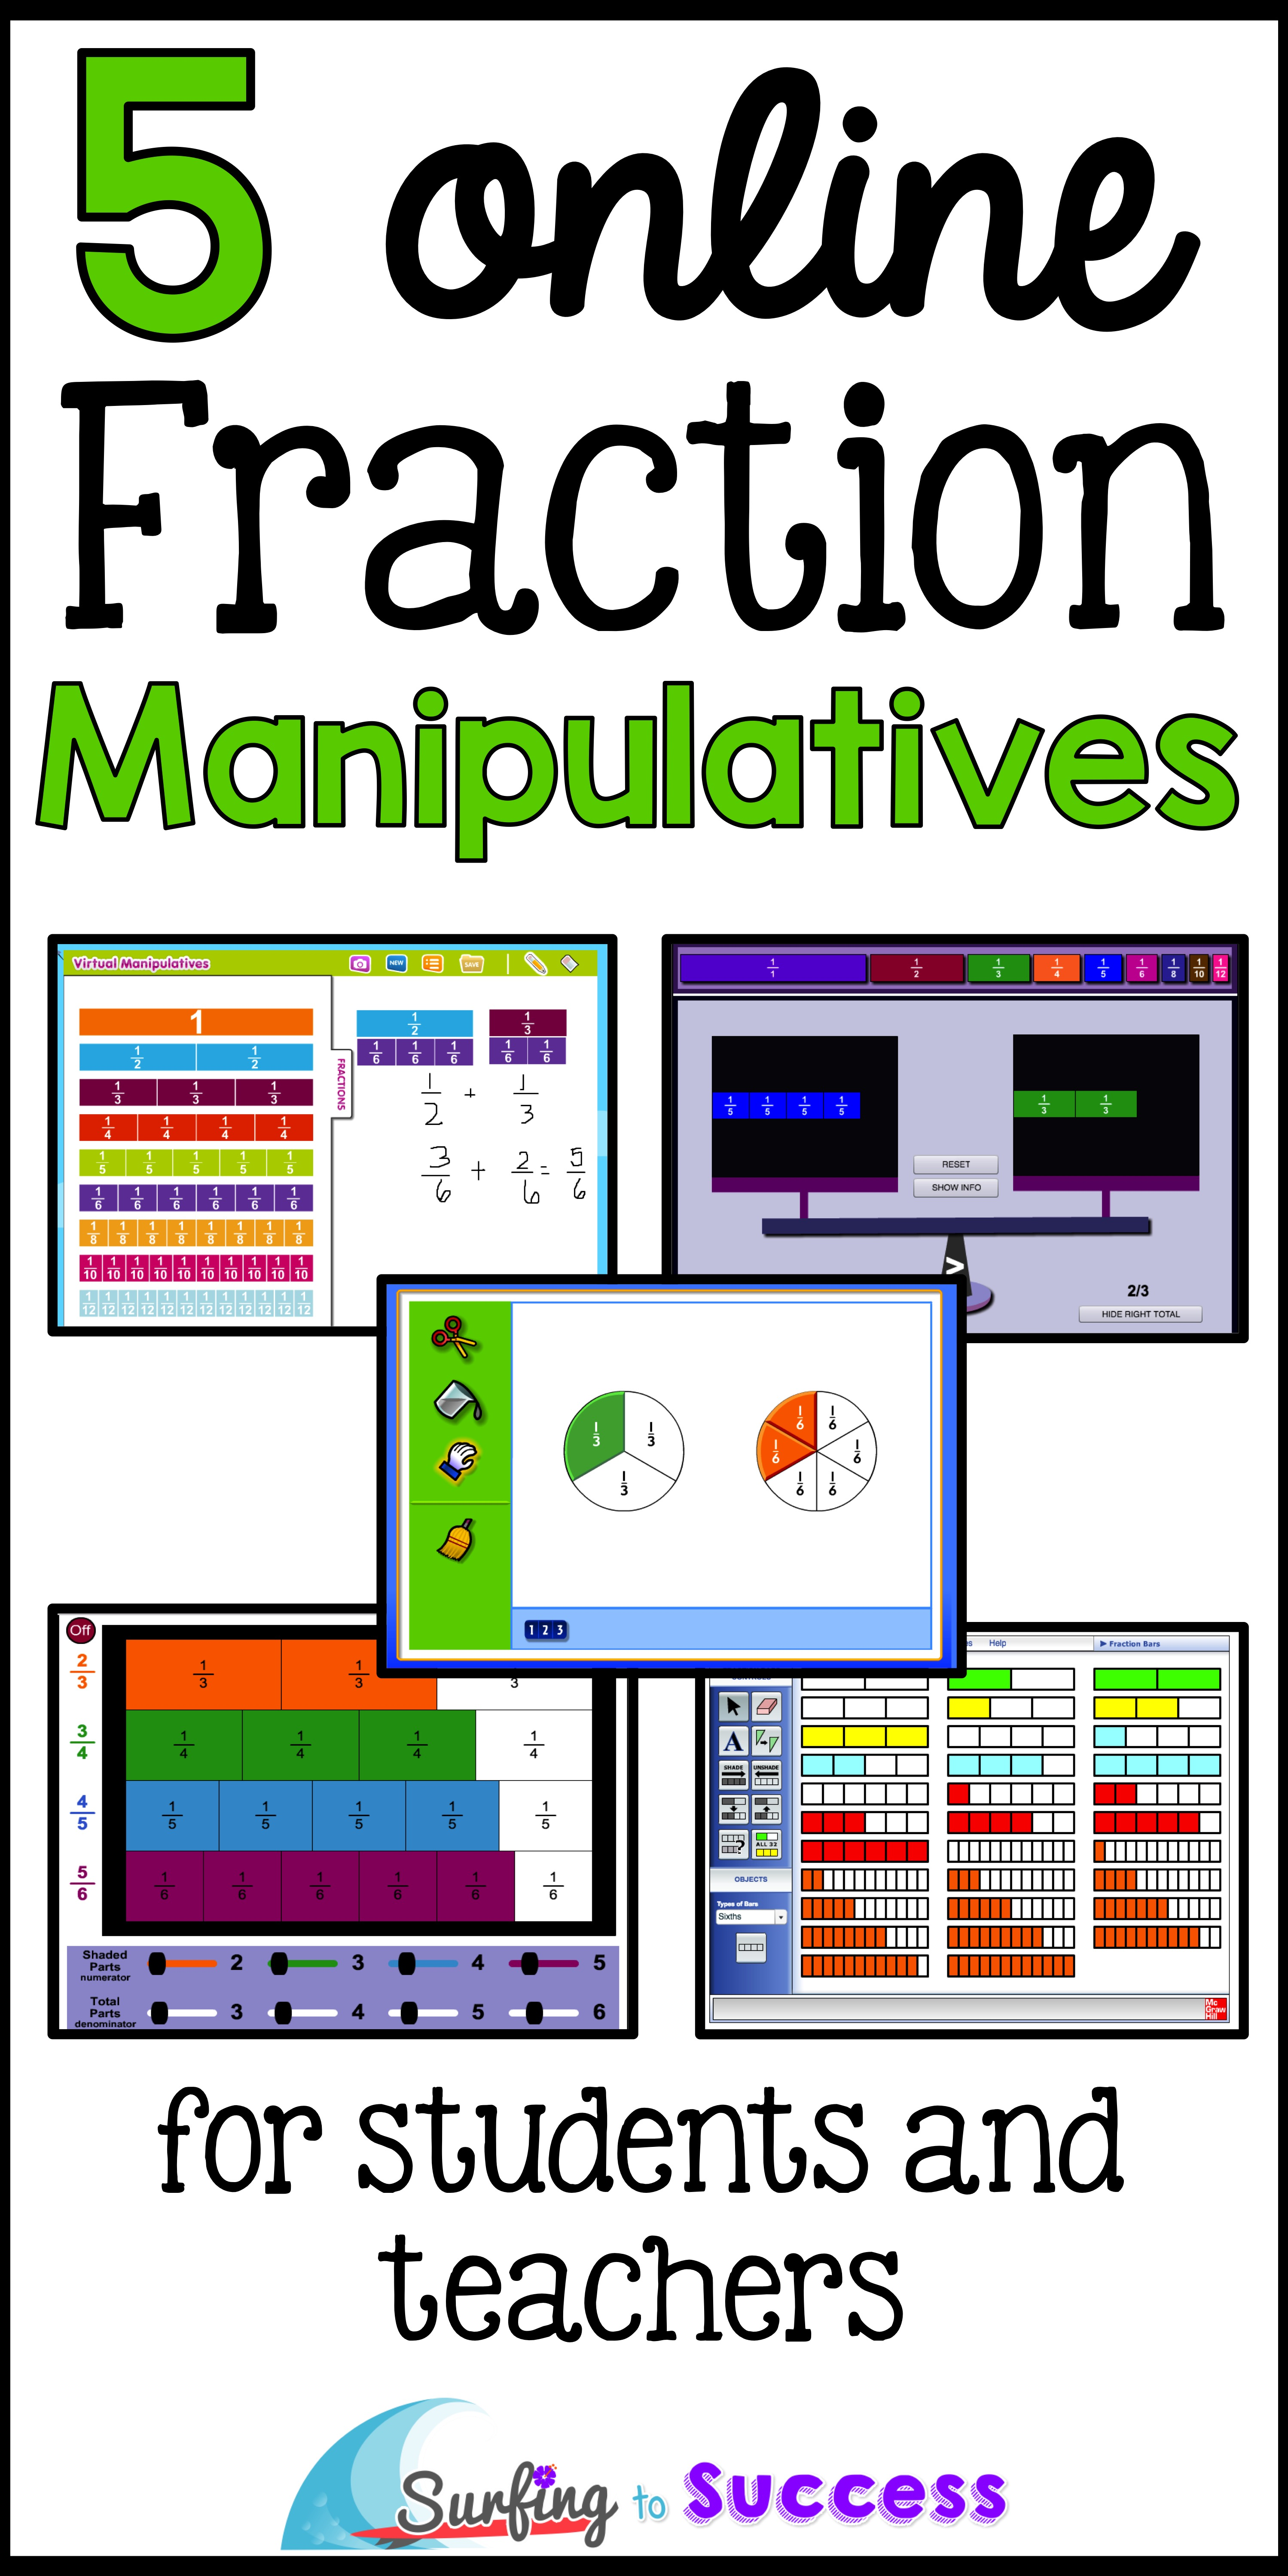 photo regarding Fraction Manipulatives Printable known as 5 On-line Portion Manipulatives - Browsing in the direction of Results